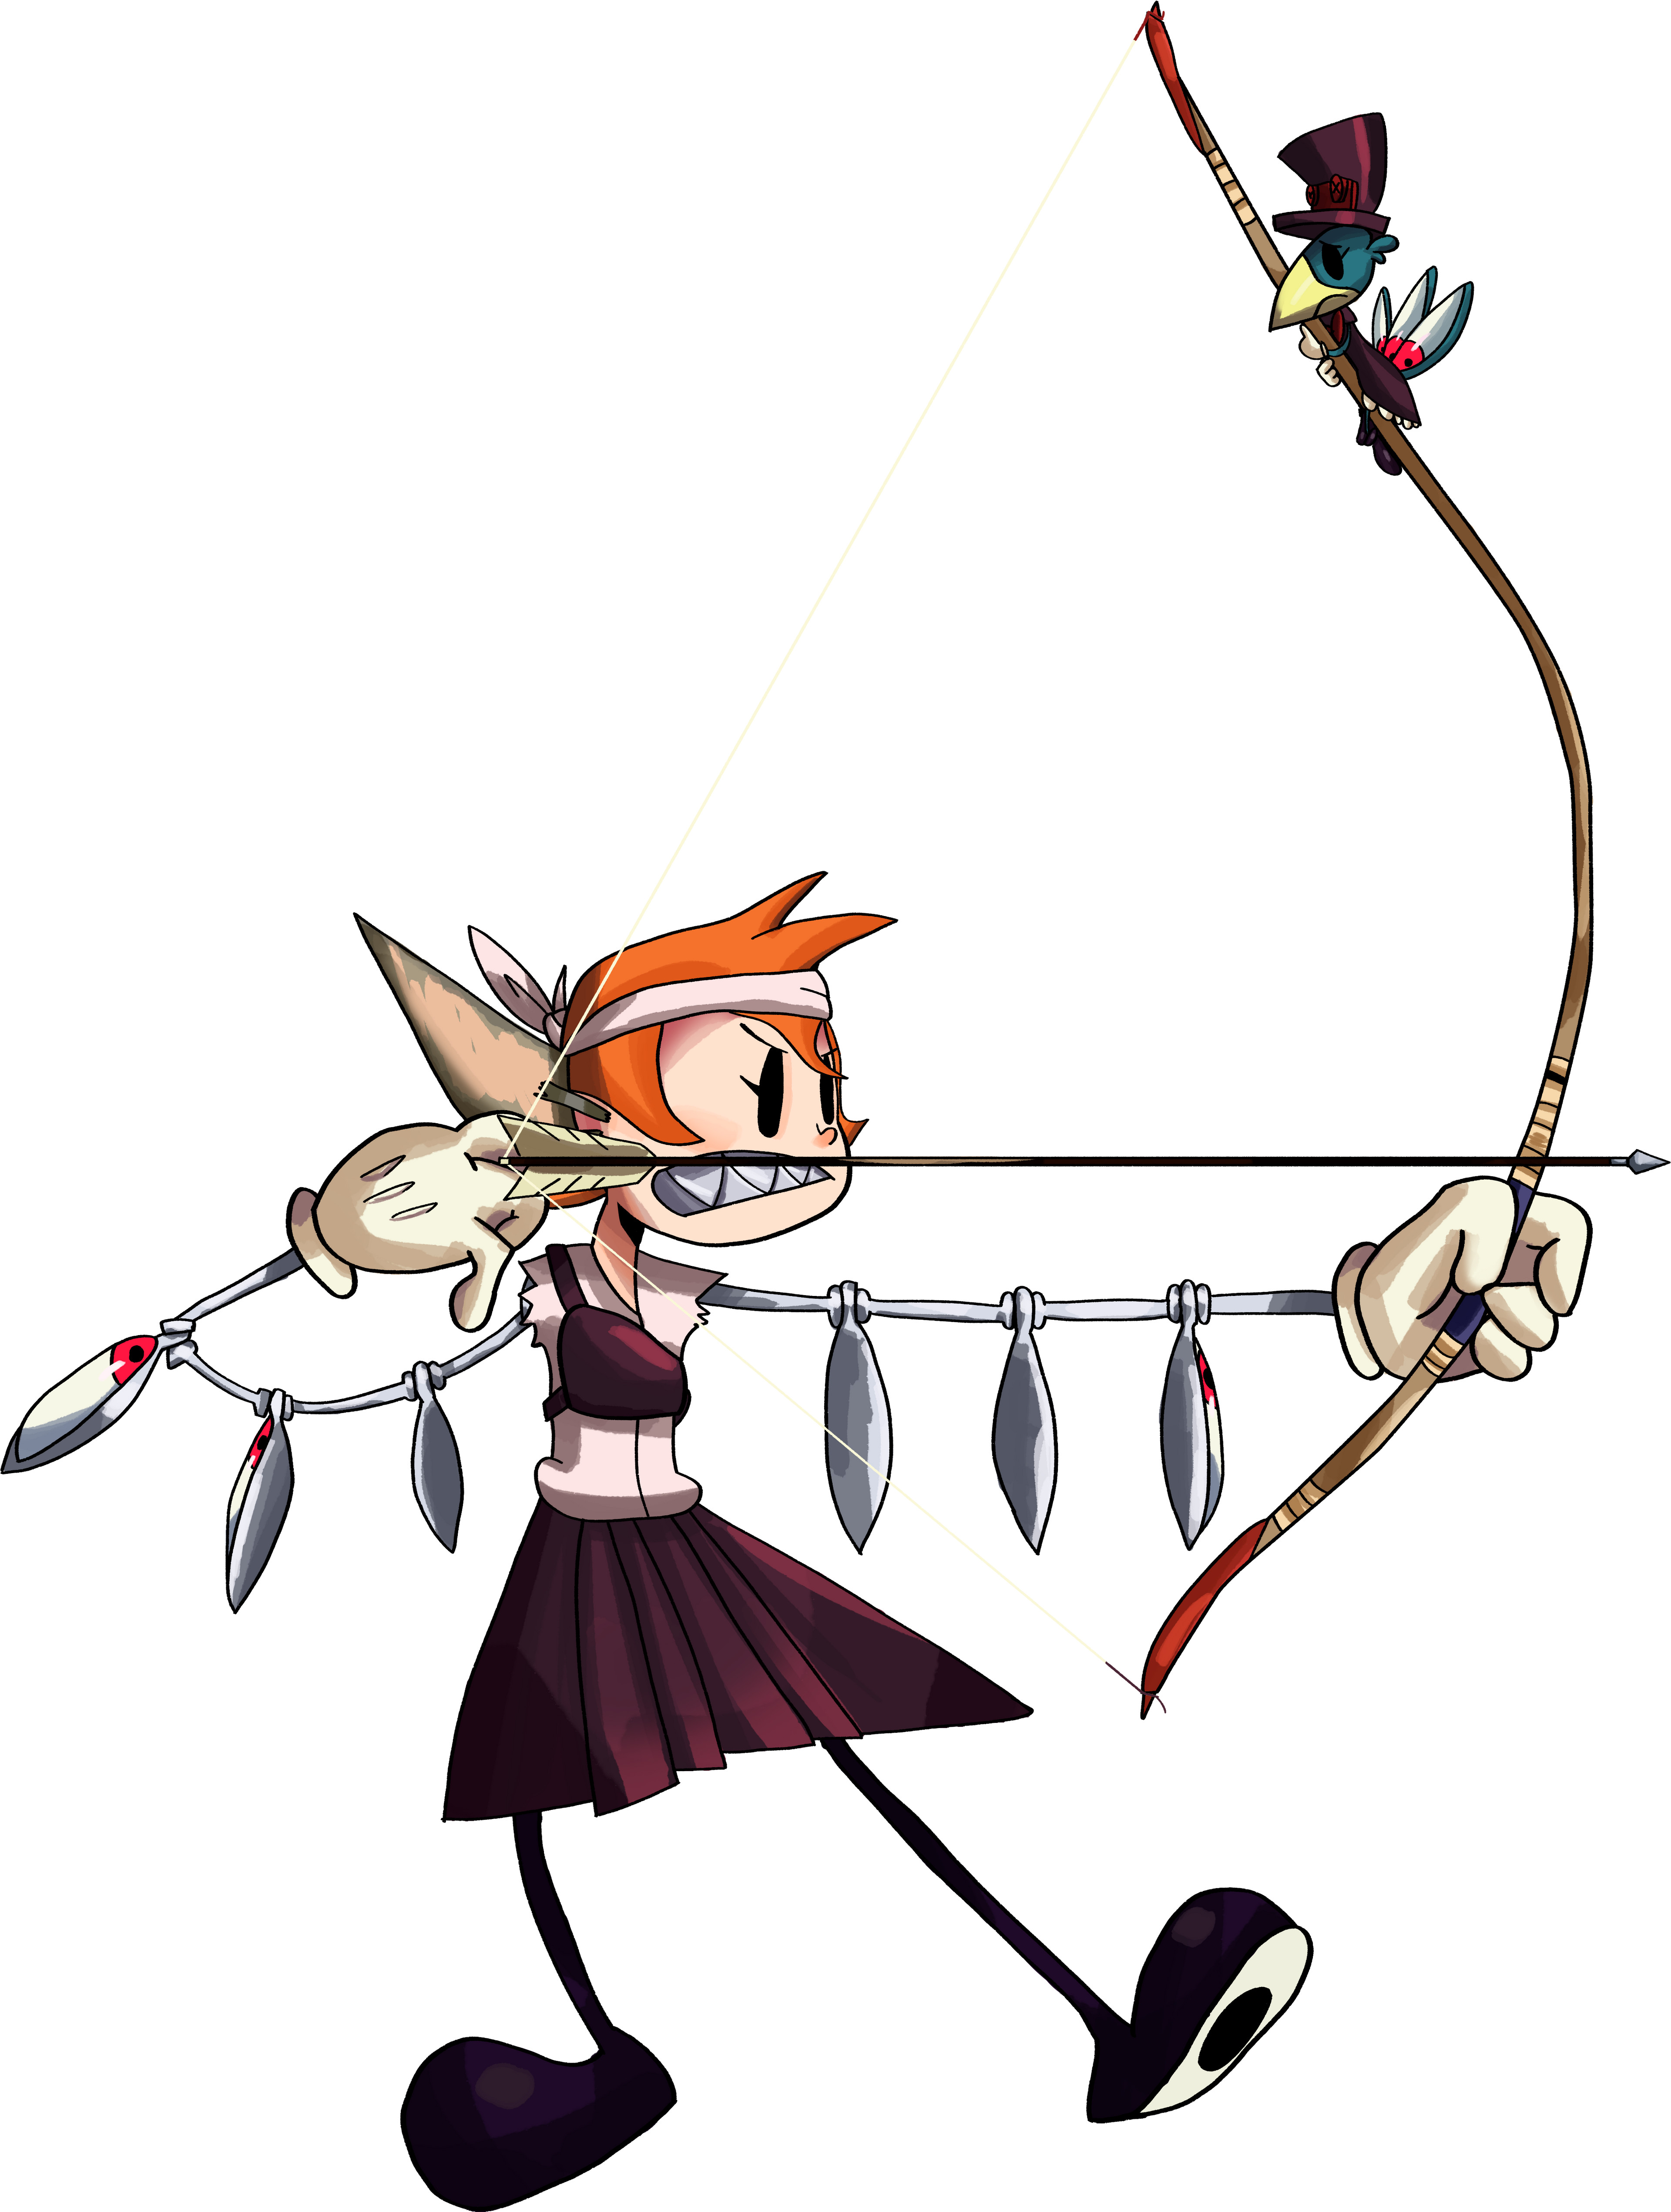 Peacock from Skullgirls as the Elf. Somehow she has patience to try Kyudo. Avery is about to get flung.